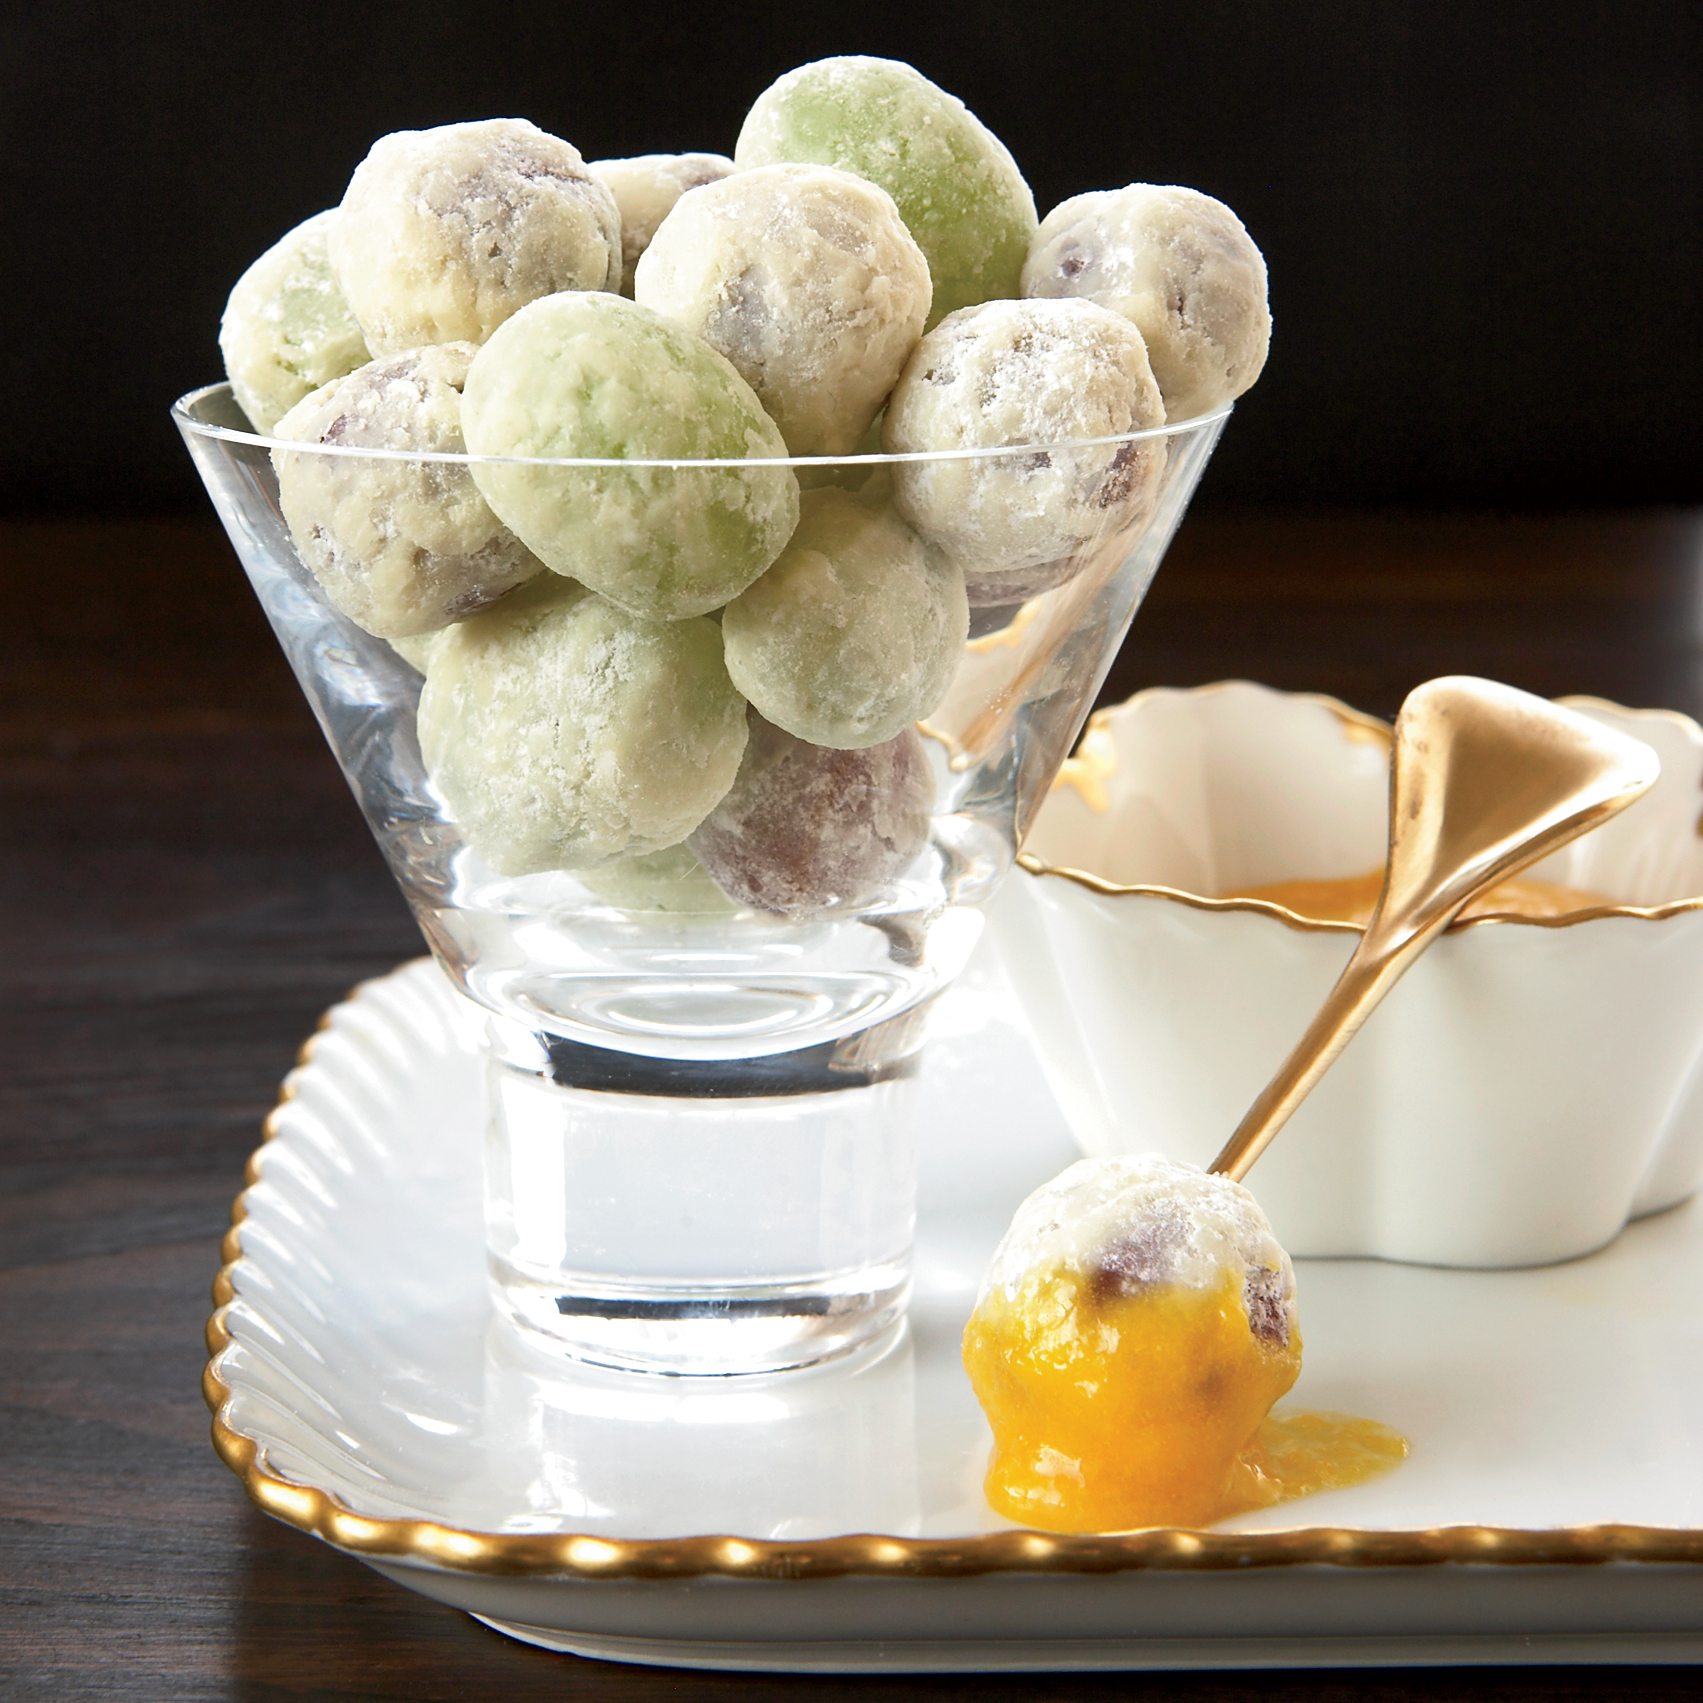 White Chocolate-Coated Grapes with Orange Curd